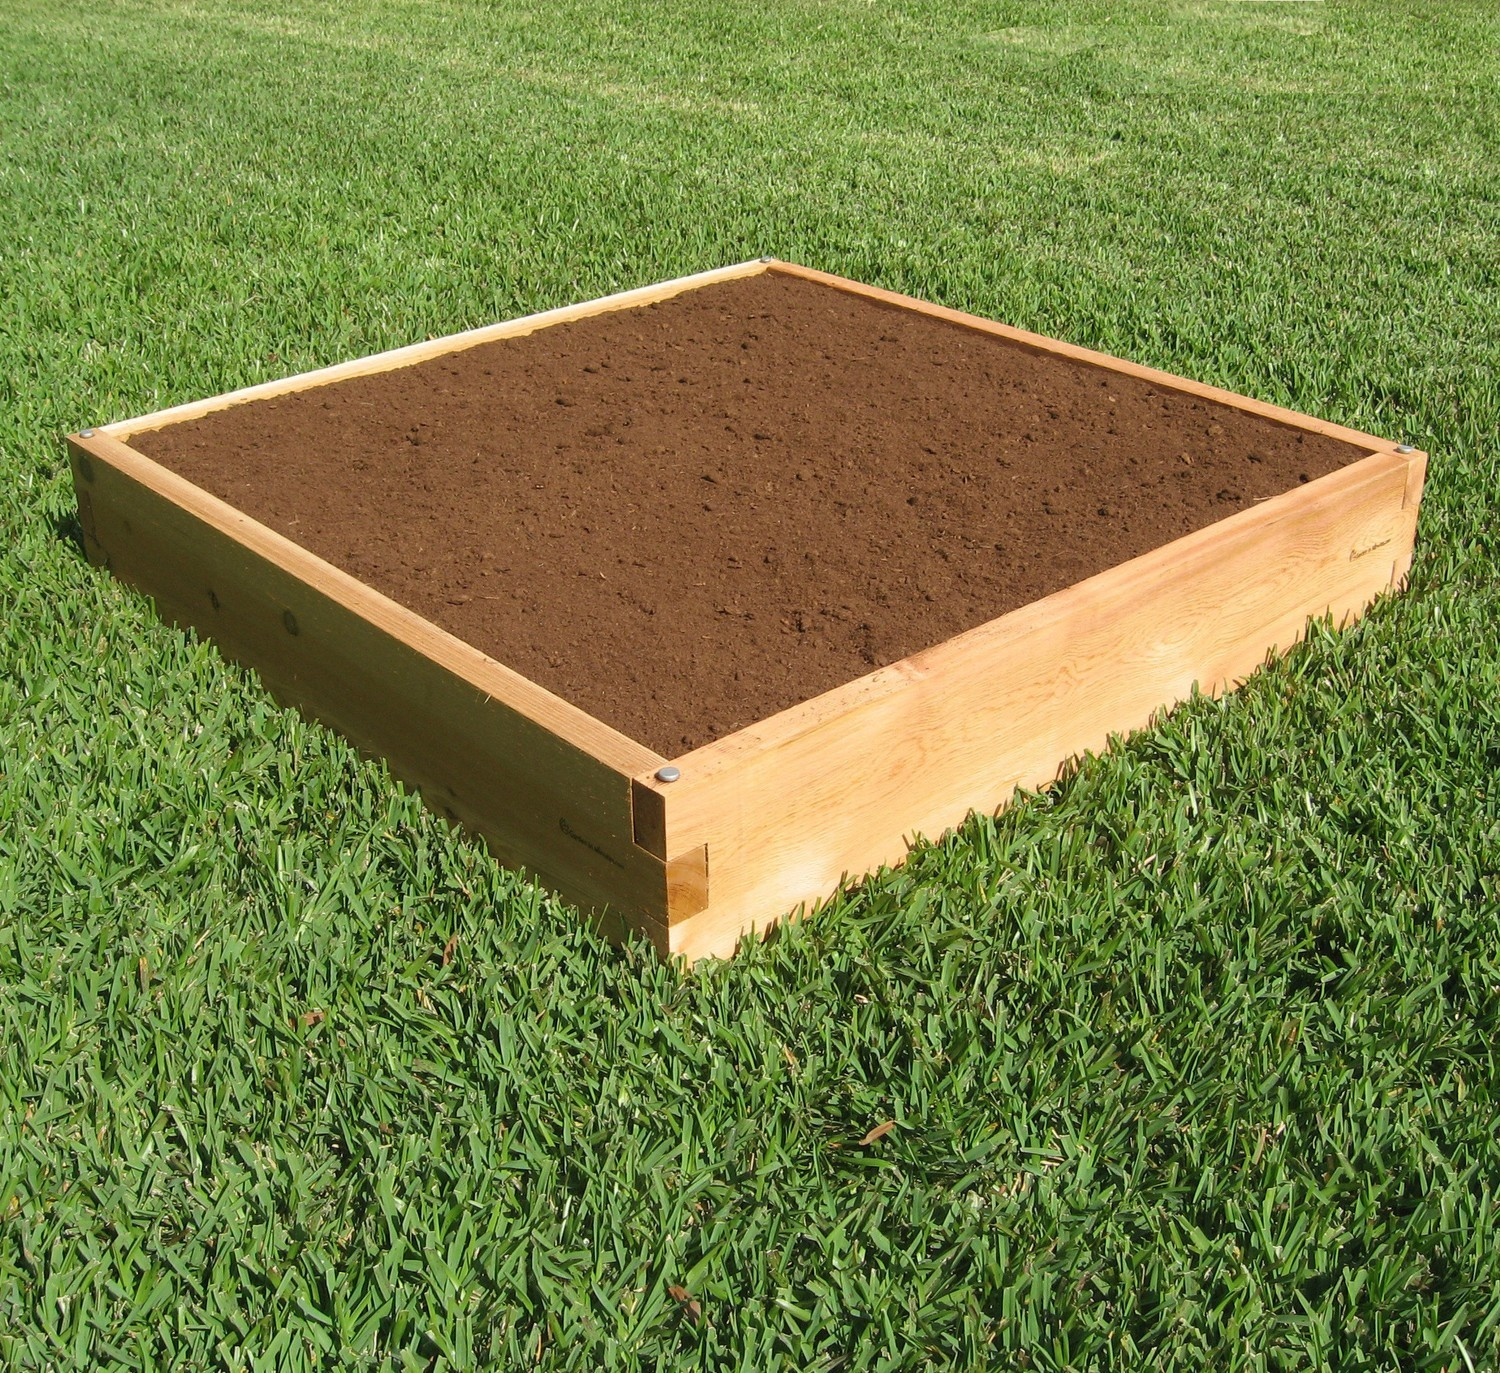 Small Garden Bed & Planting 4X4